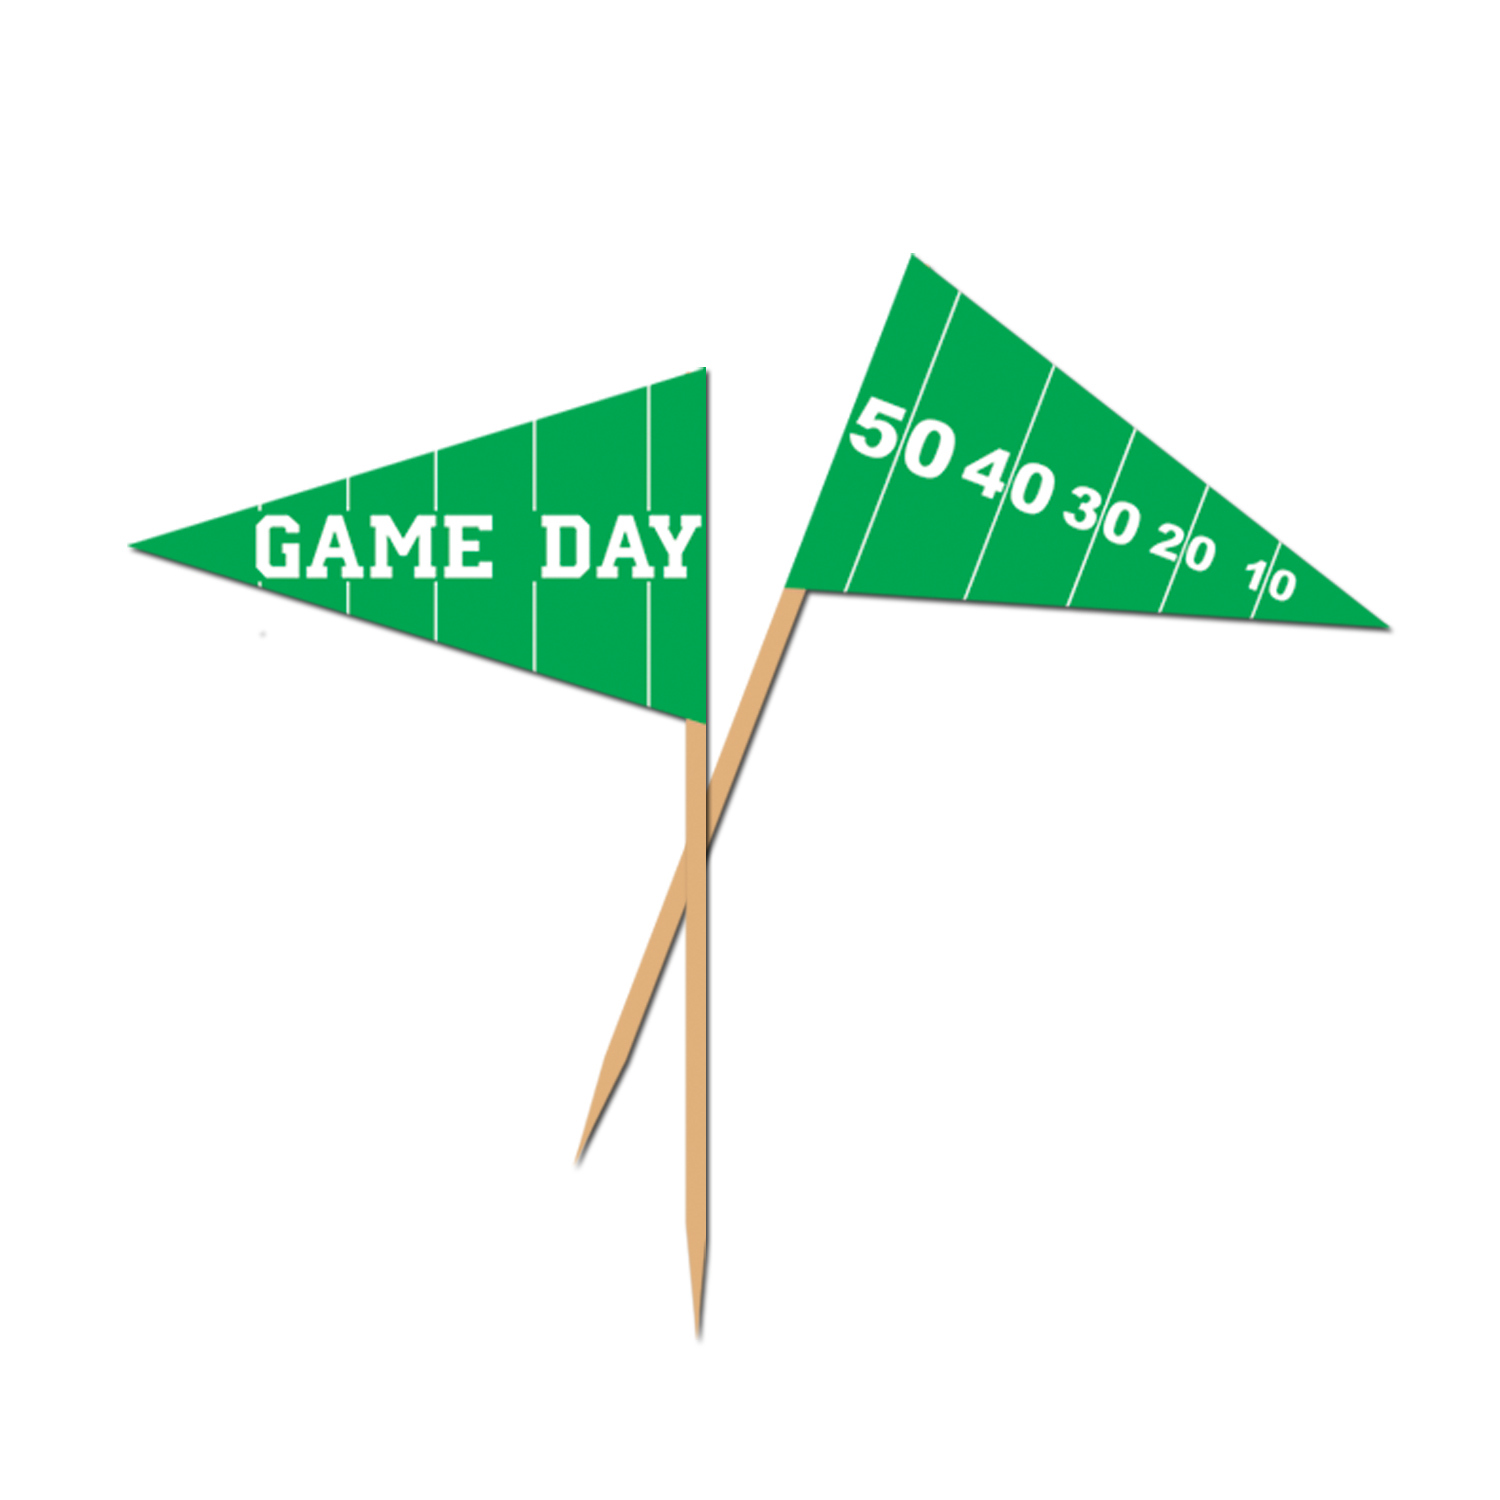 Game Day Football Picks (Pack of 600) game day, game, day, football, picks, food, field, party, playoffs, tailgating, bbq, green, white, toothpick,